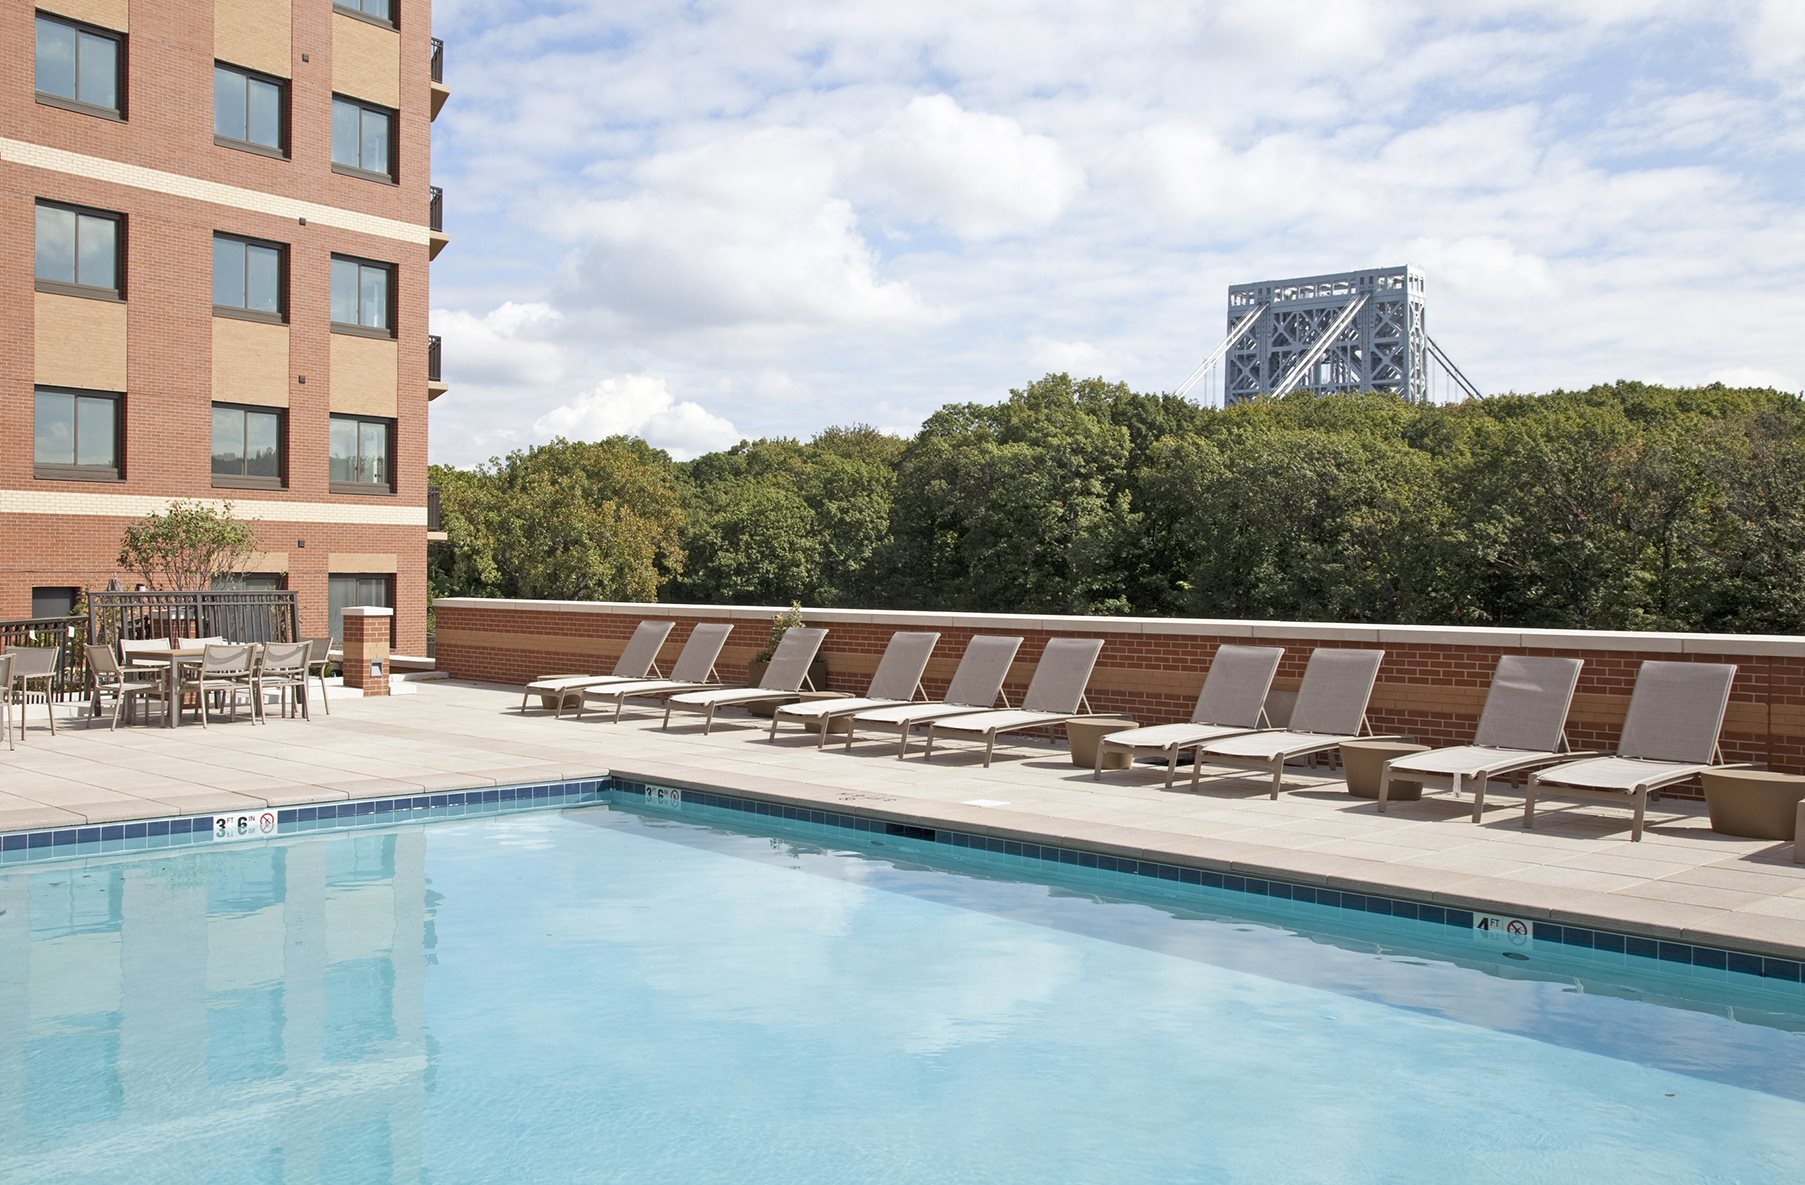 Sparkling Swimming Pool at Twenty50 by Windsor, 2050 N. Central Rd., Fort Lee, NJ 07024